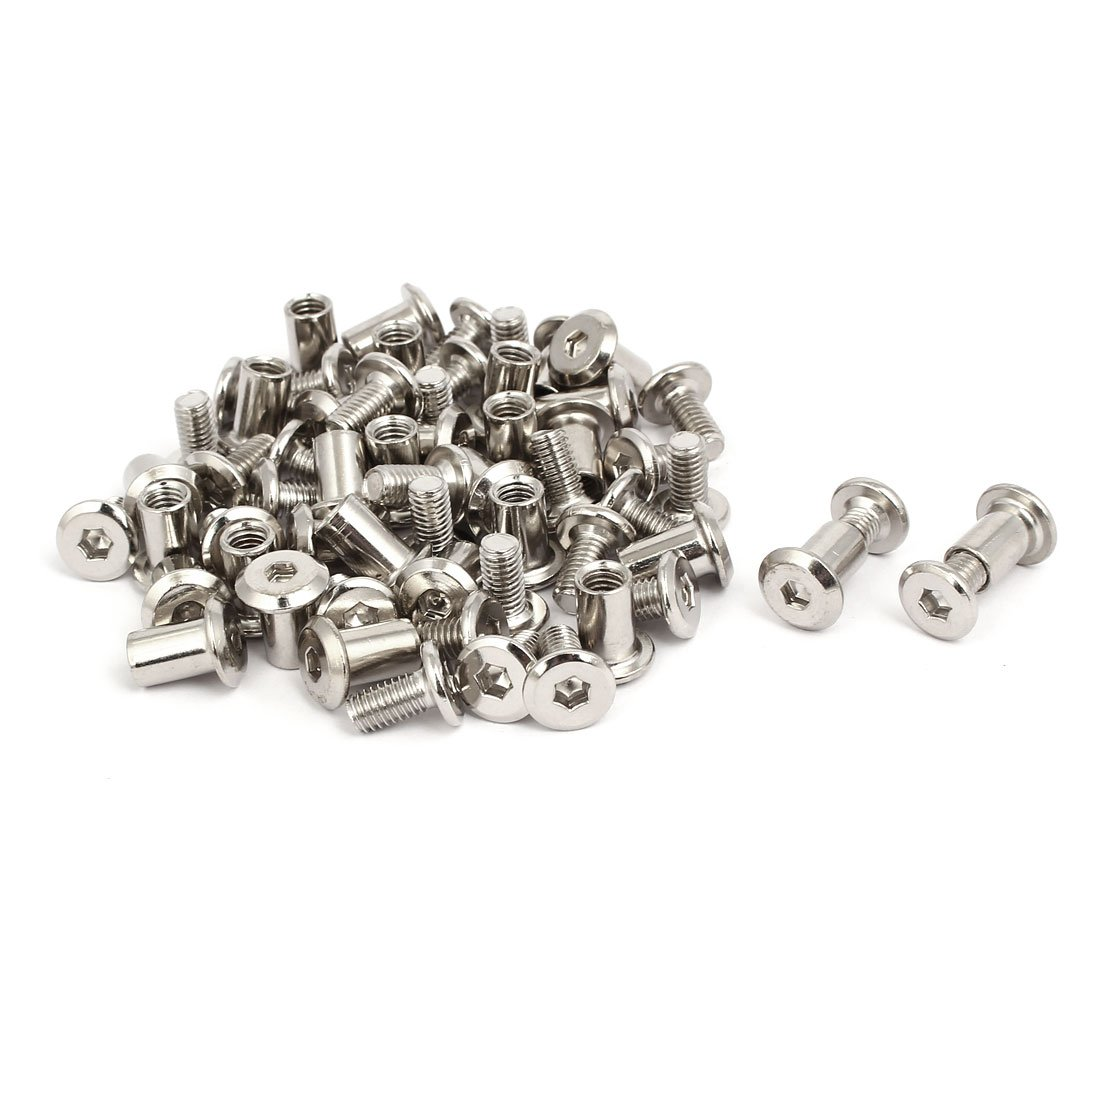 uxcell M6x12mm Male Thread Cupboard Cabinet Socket Hex Screw Post Silver Tone 30pcs